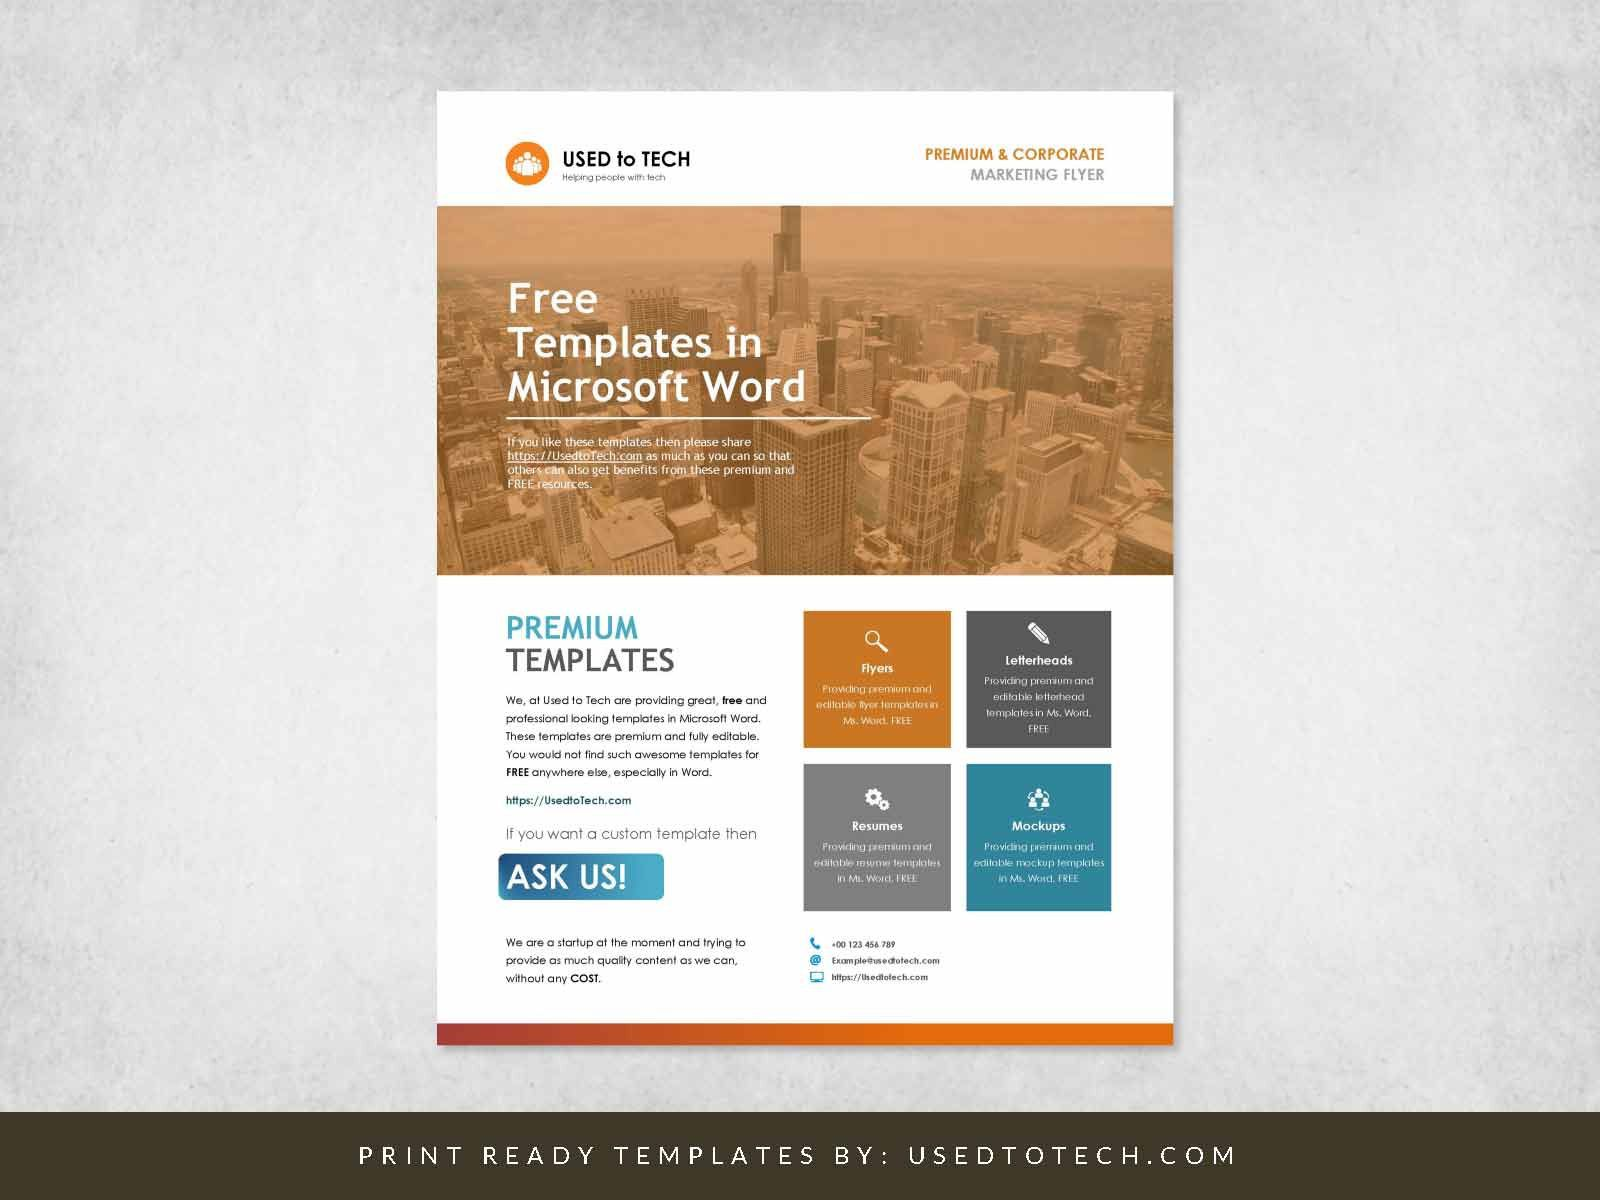 001 Beautiful Template Brochure For Microsoft Word Free Concept  Flyer Bowling Tri Fold 2010Full